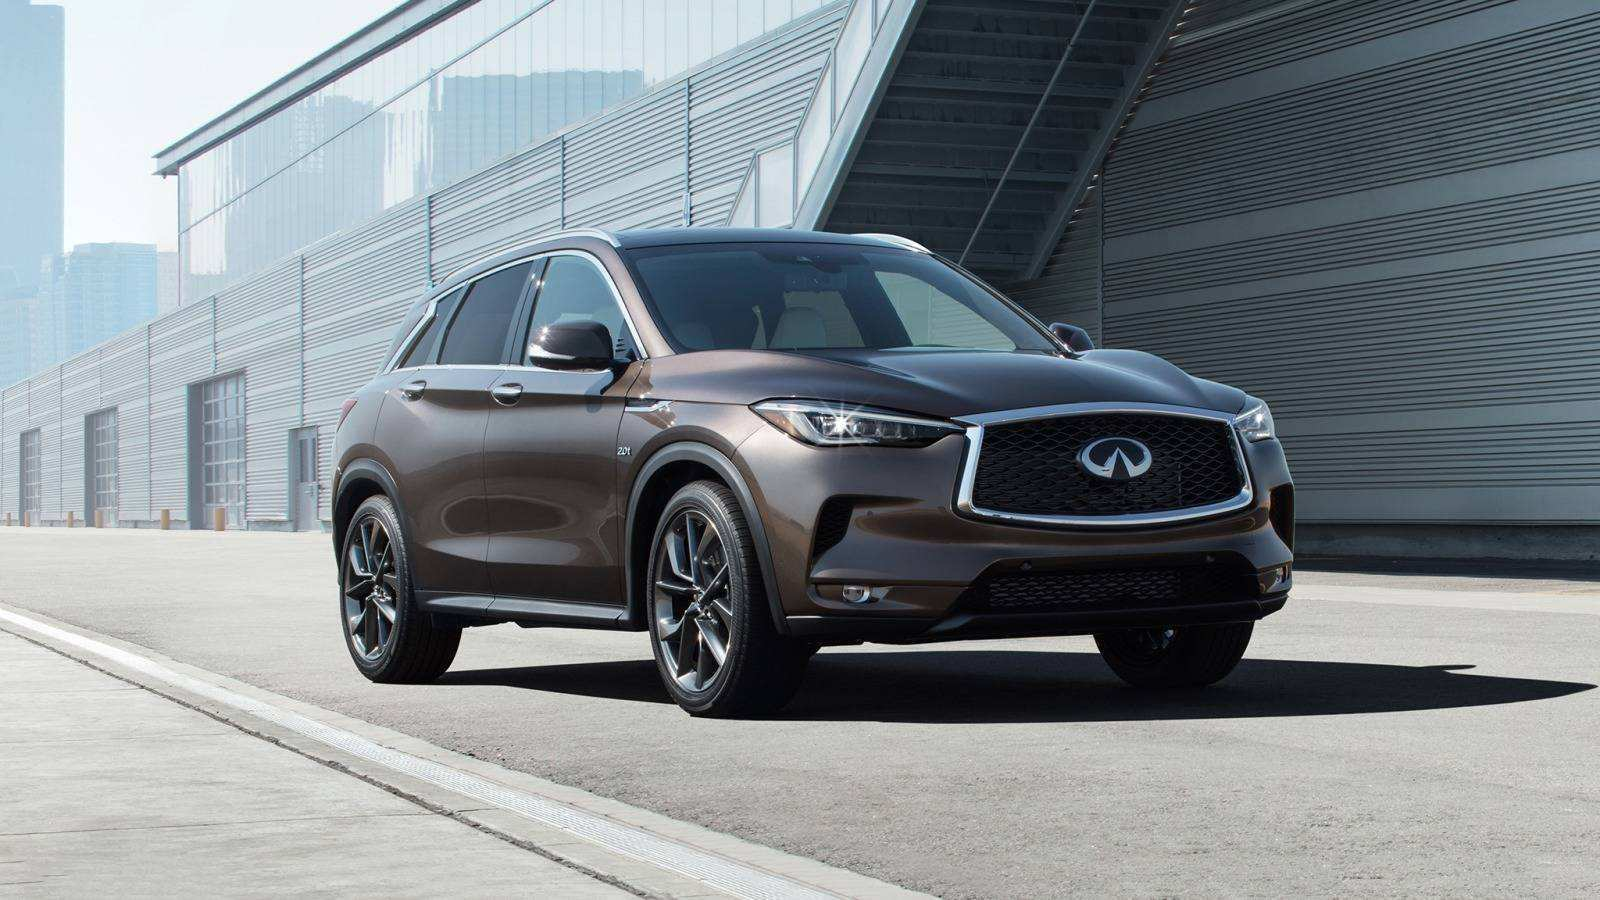 92 Great 2019 Infiniti Qx50 Horsepower Performance by 2019 Infiniti Qx50 Horsepower